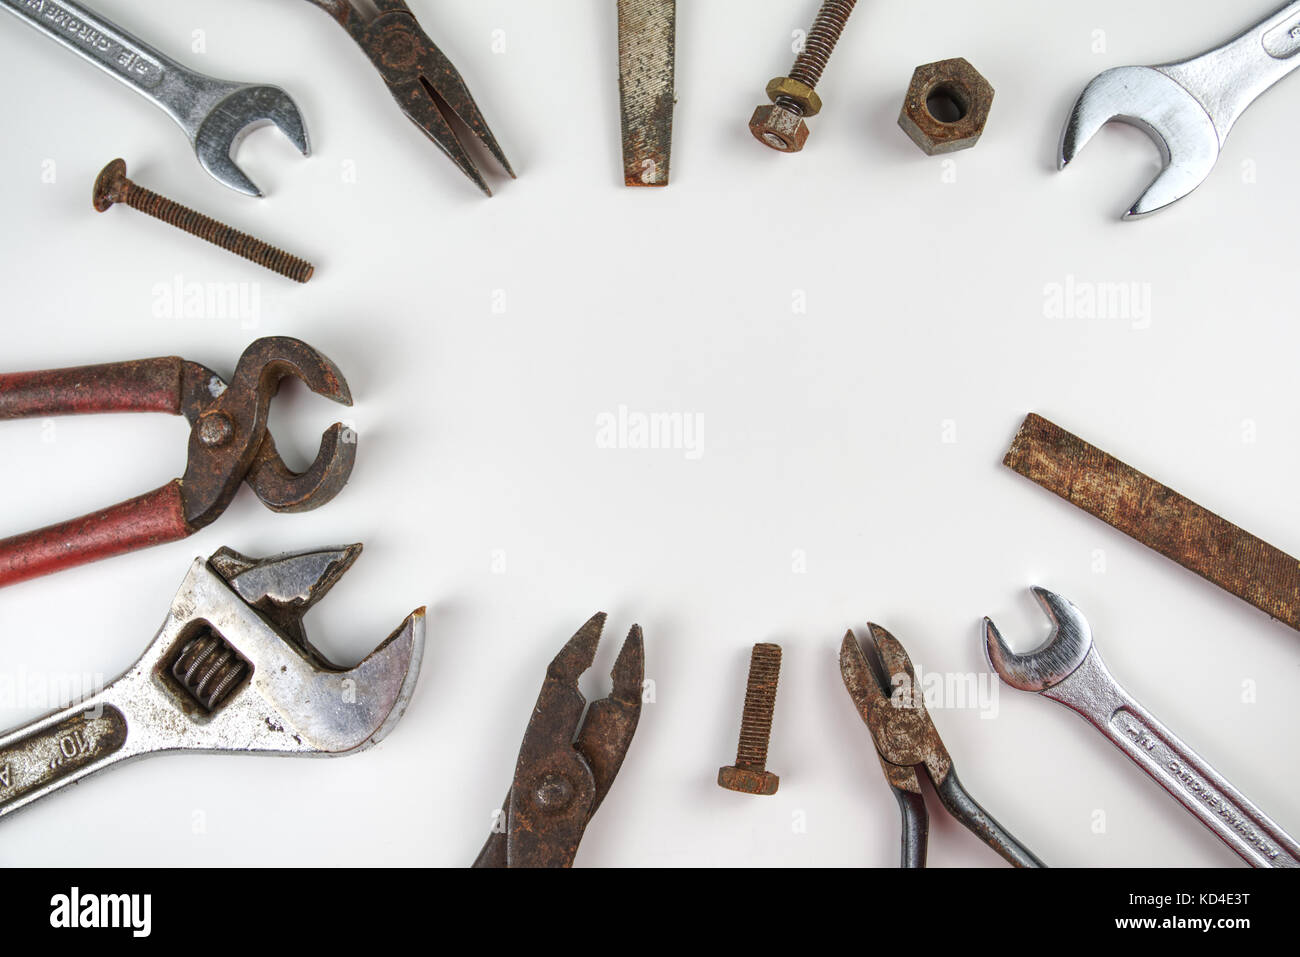 Old tools making a background frame border for text. Room for copy ...